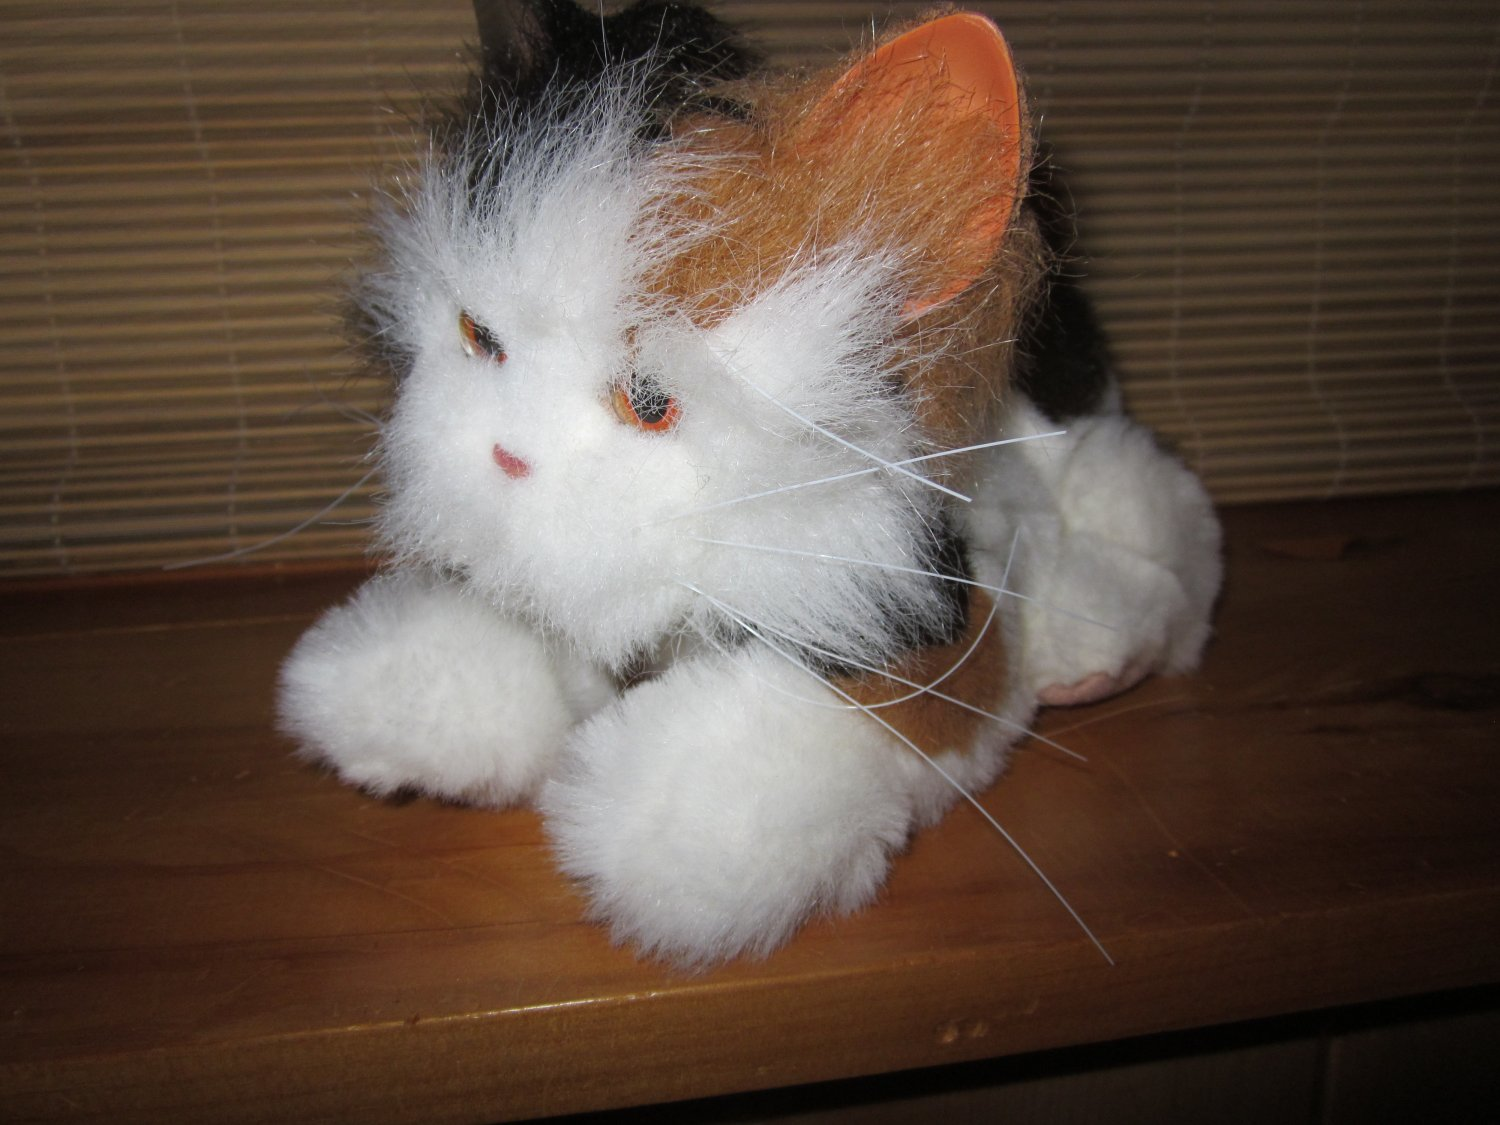 Hasbro FurReal Friends Calico Cat Interactive Toy Kitten Fur Real